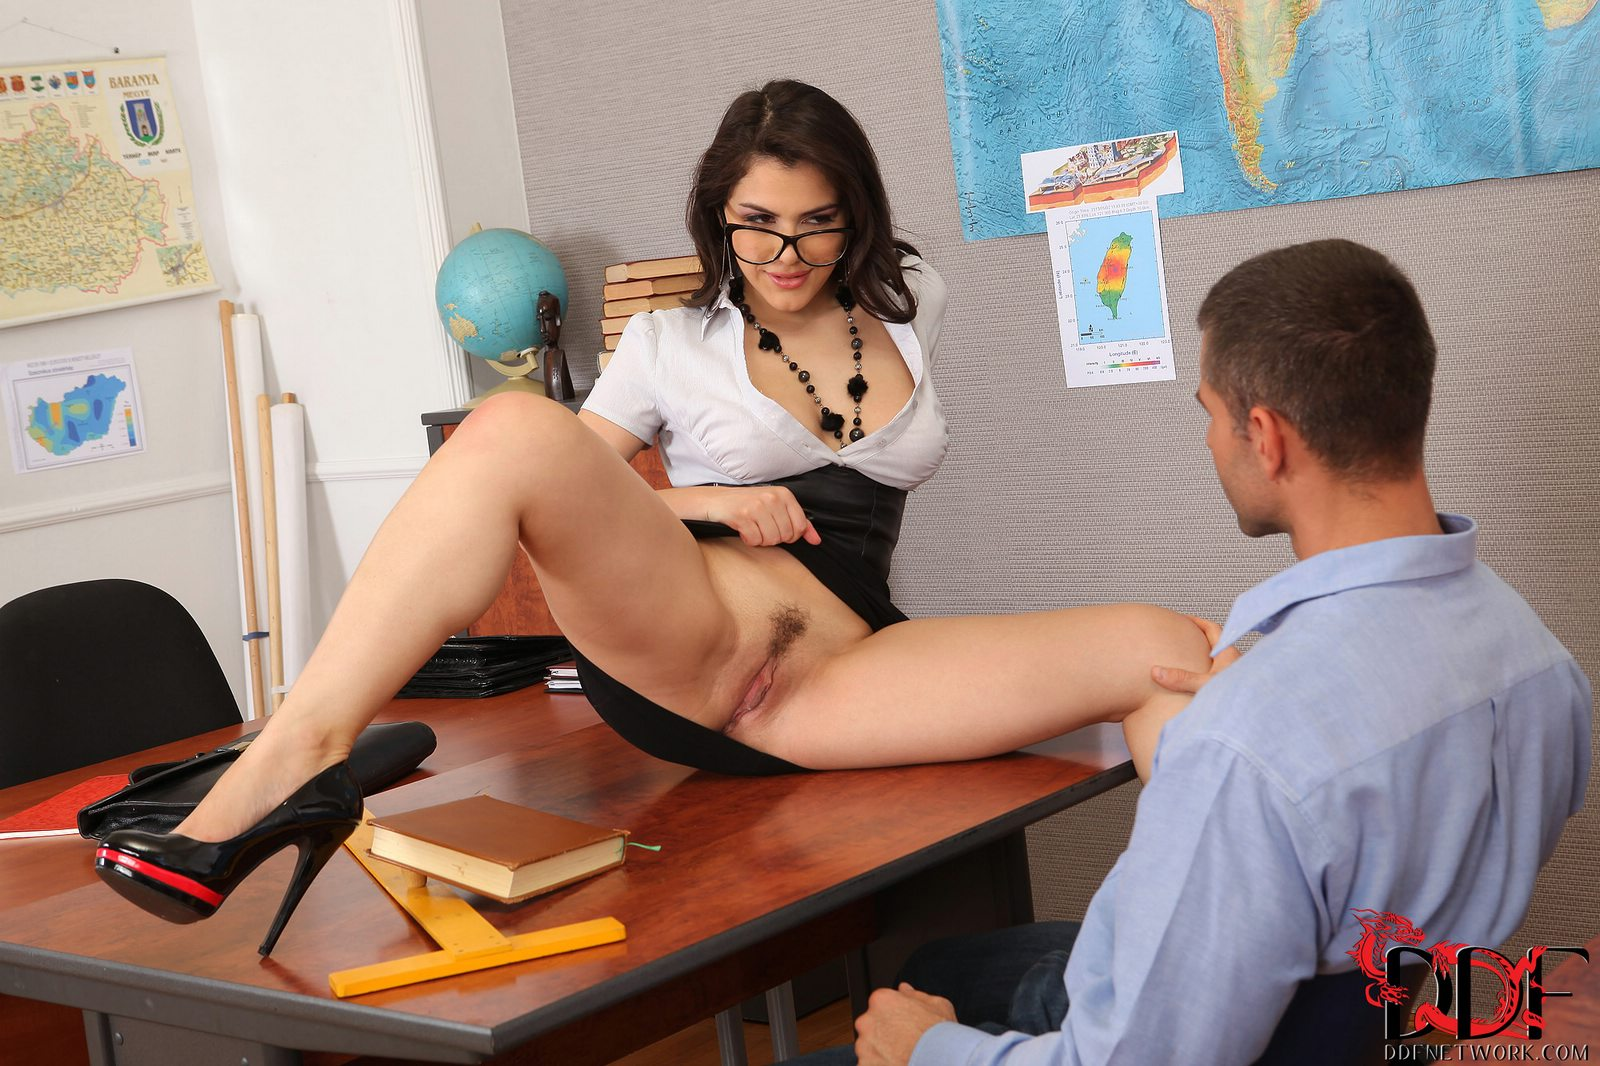 Asian latina school girl cristi ann shows off curves amp bates 5